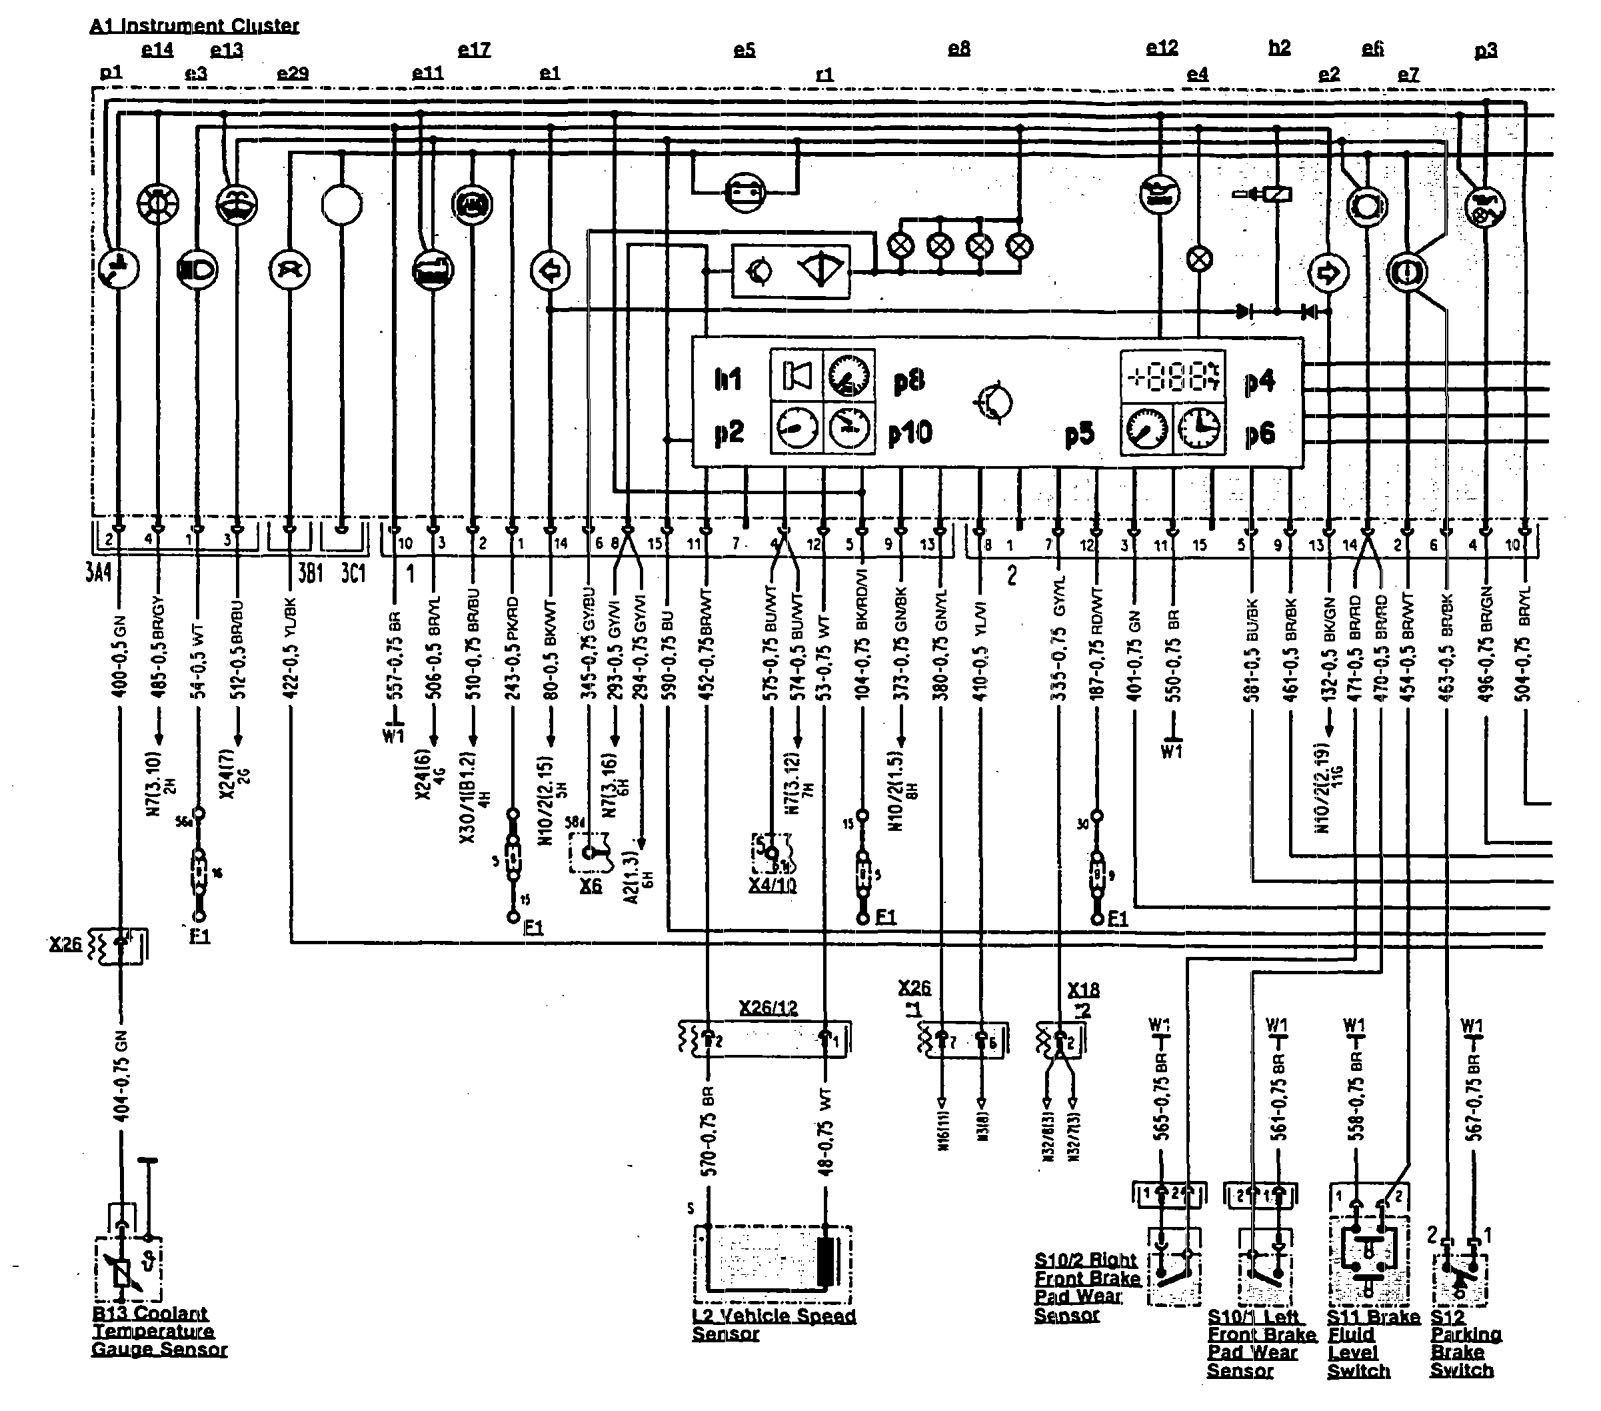 Wiring Diagram Info Fuse Box Bmw 325i 1993 Diagrams Acura Integra 1987 Convertible Auto Lexus Gs300 2007 335i